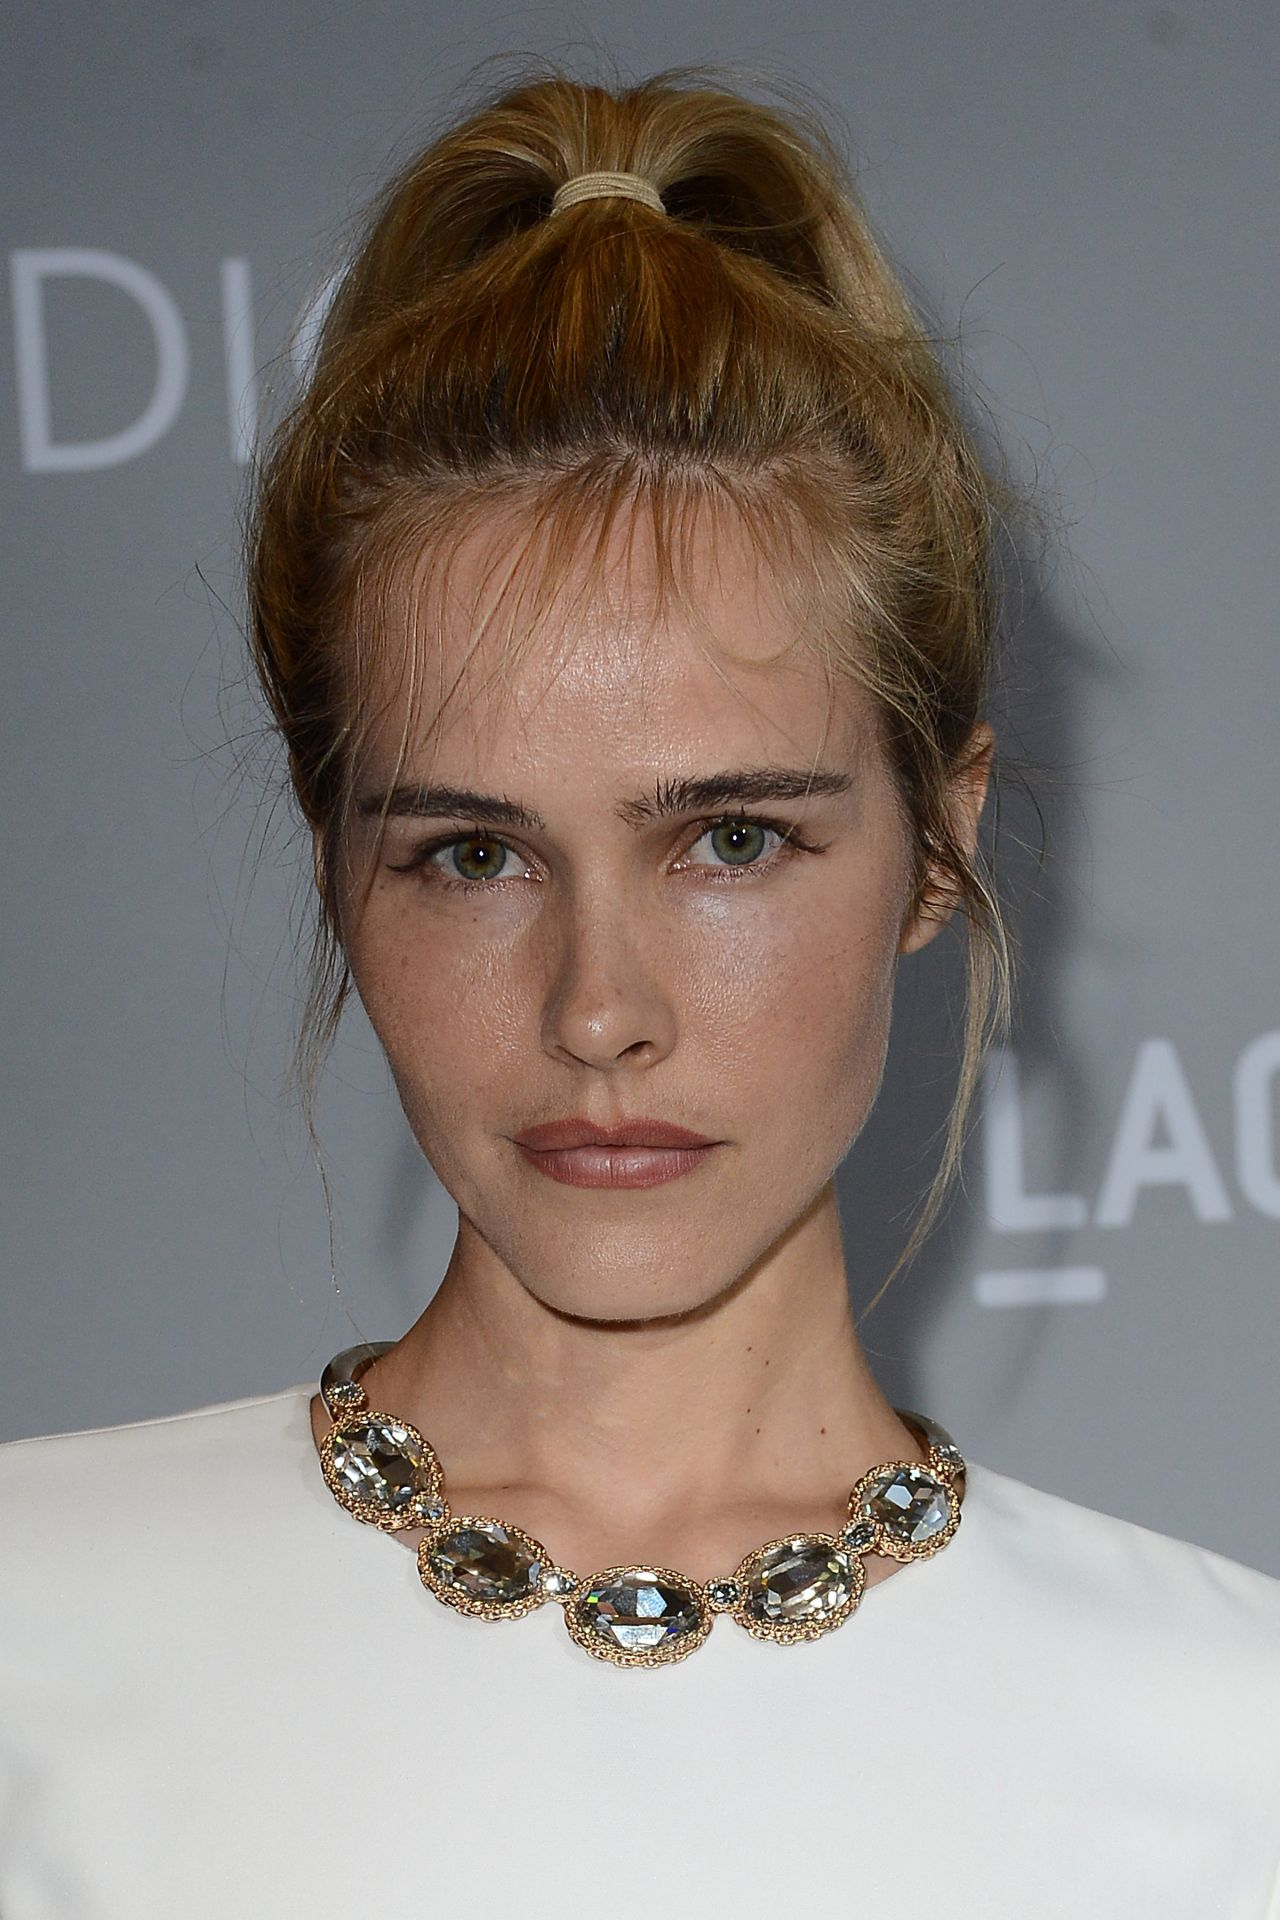 isabel lucas - photo #30